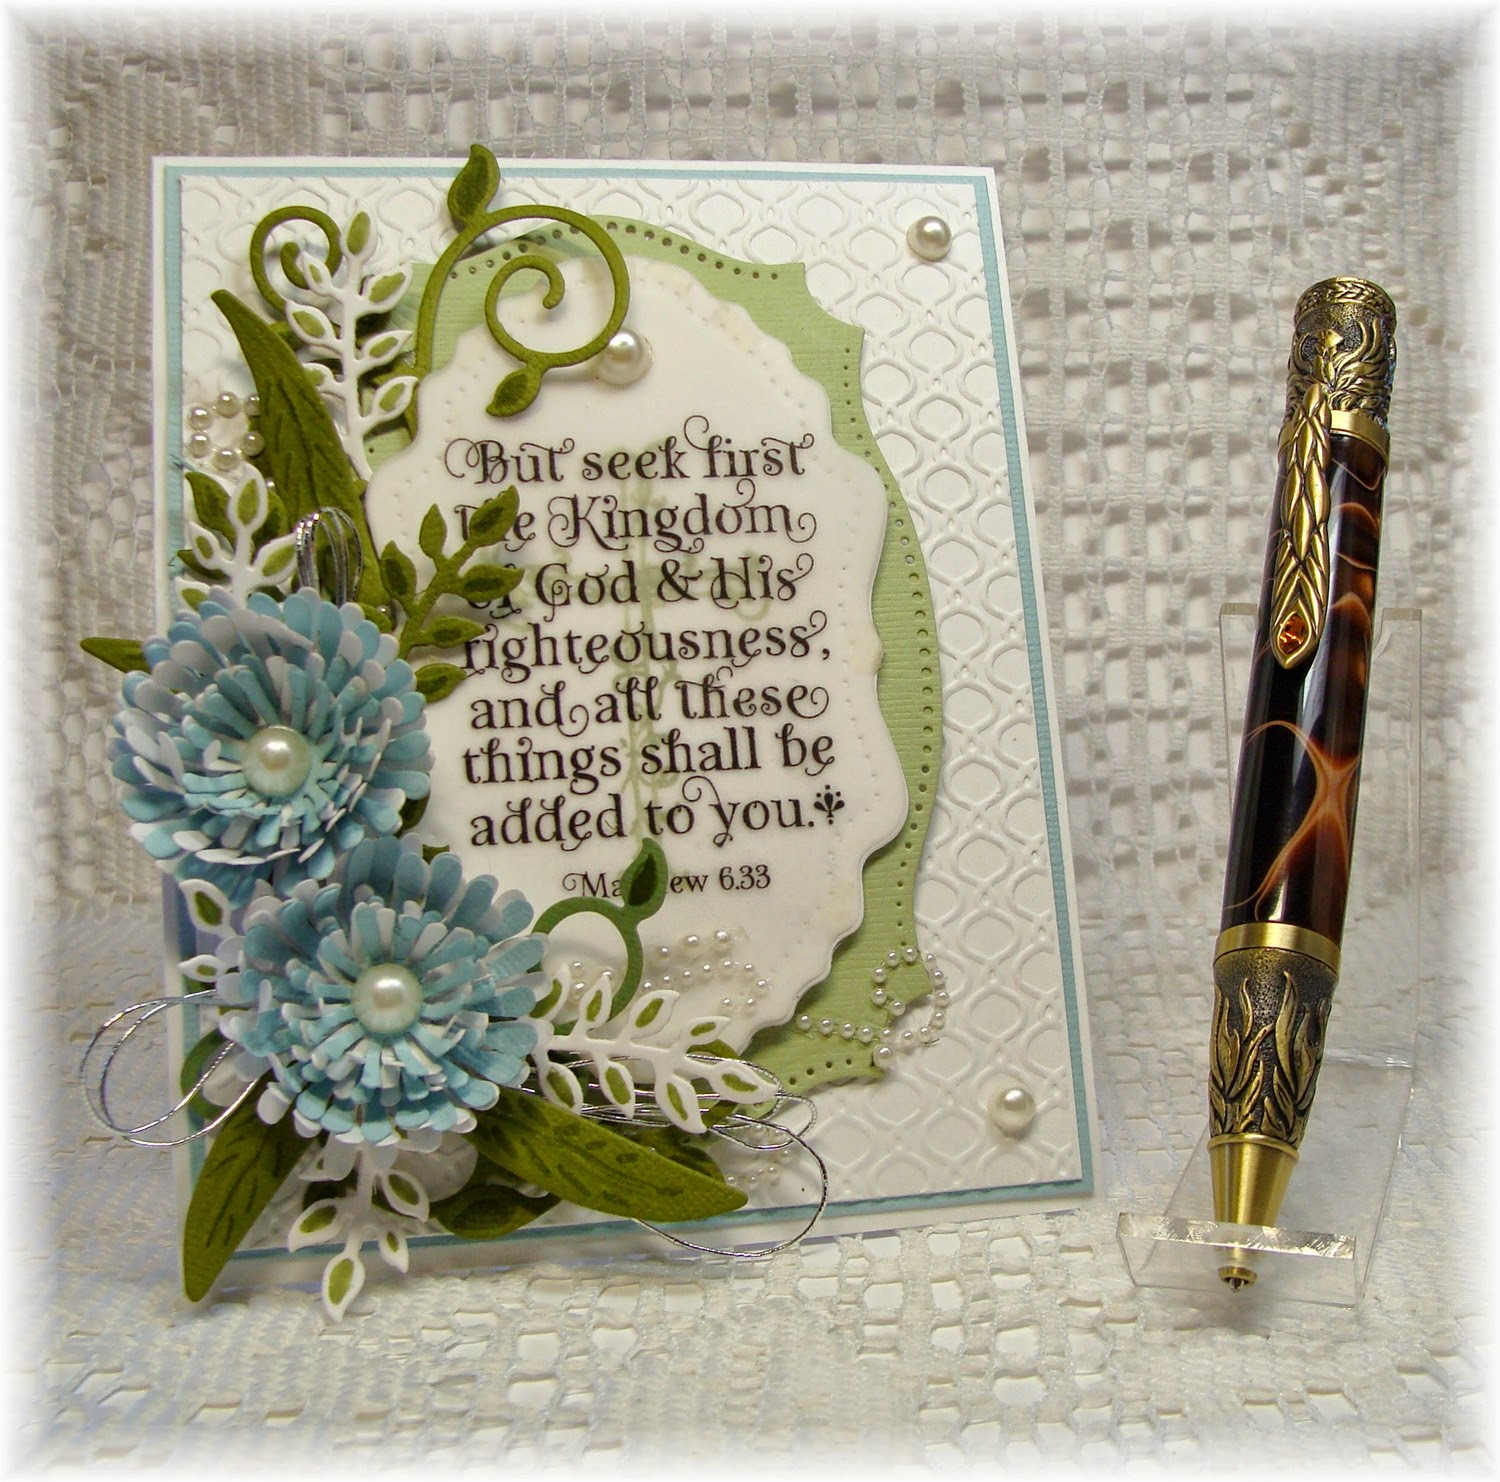 Our Daily Bread Designs, Cross with Vines, God Verses,Aster, Fancy Foliage, Vintage Flourish Pattern, Spellbinders Labels 25, Designed by Chris Olsen, Twinkles Glow With stamps, Chisel Ink N More on Etsy, Phoenix turned pen